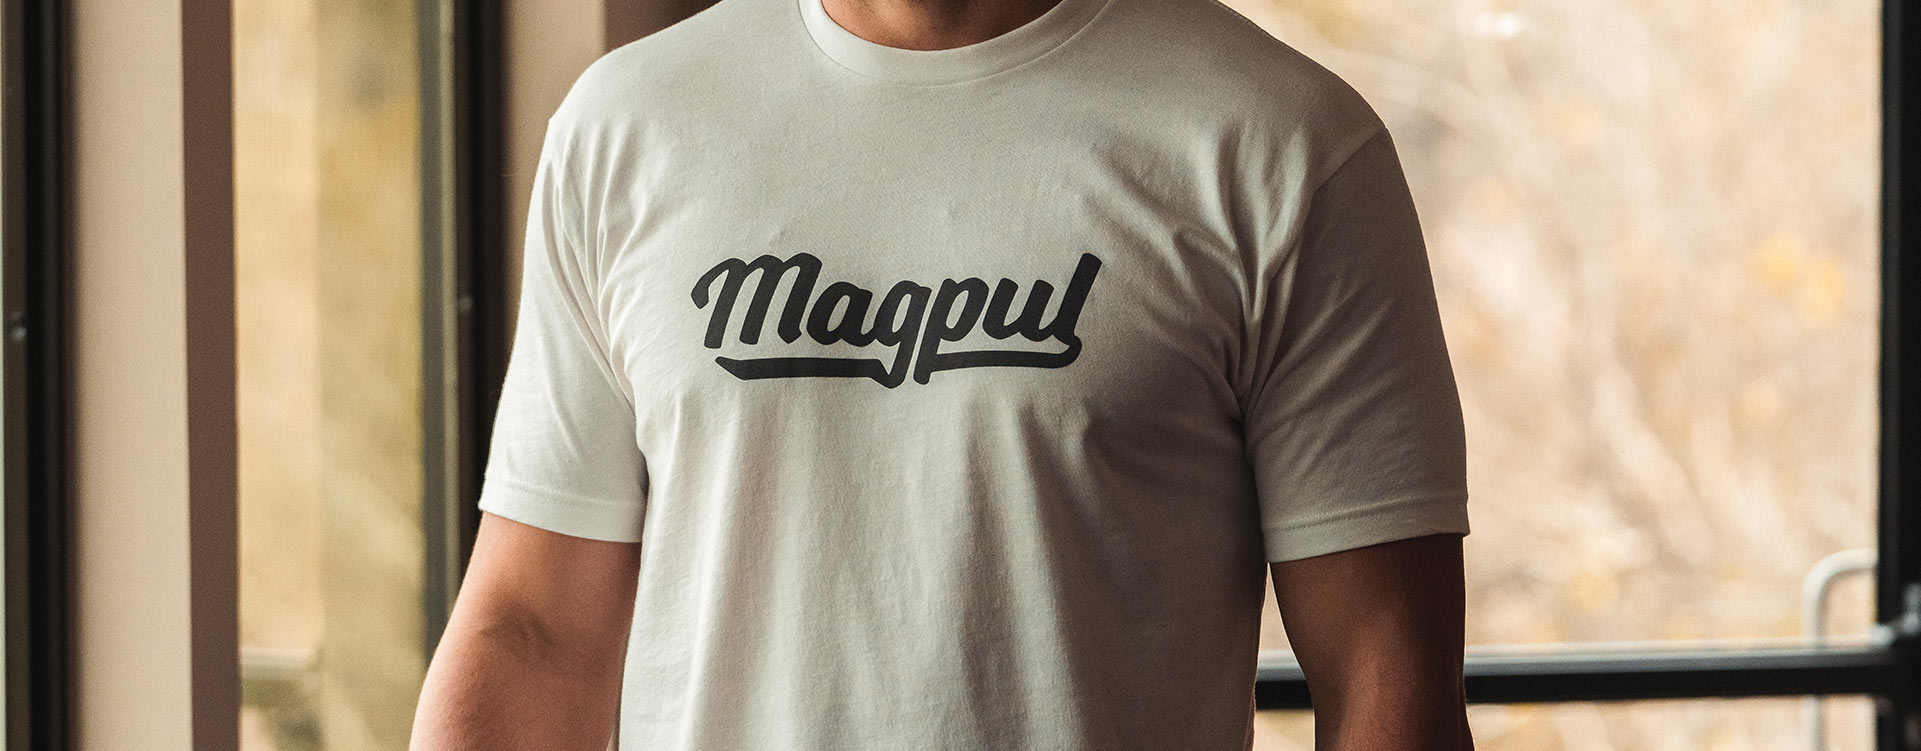 Magpul Script CVC T-Shirt in White with charcoal scripted lettering on man inside